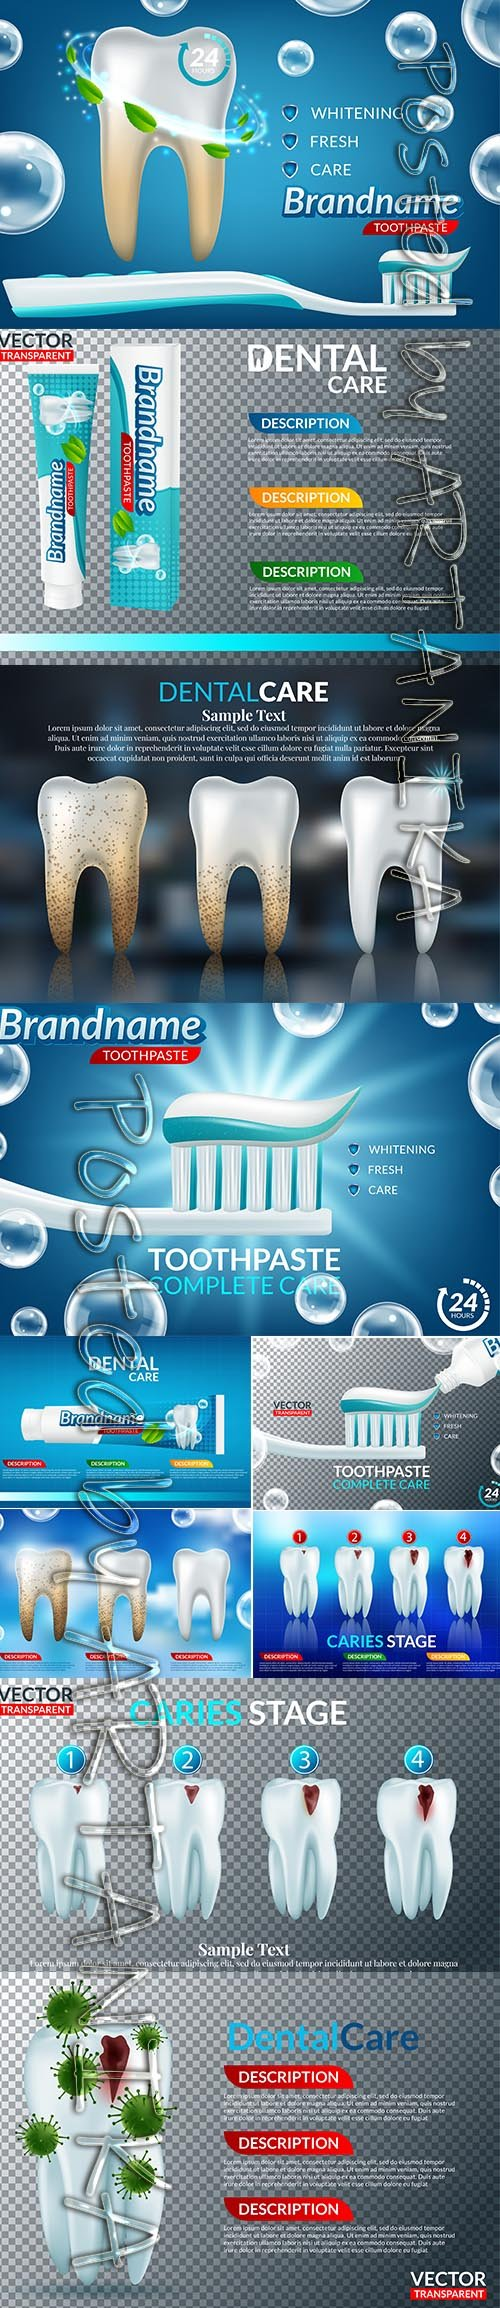 Collection of Dental Care Teeth Illustration Vol 2